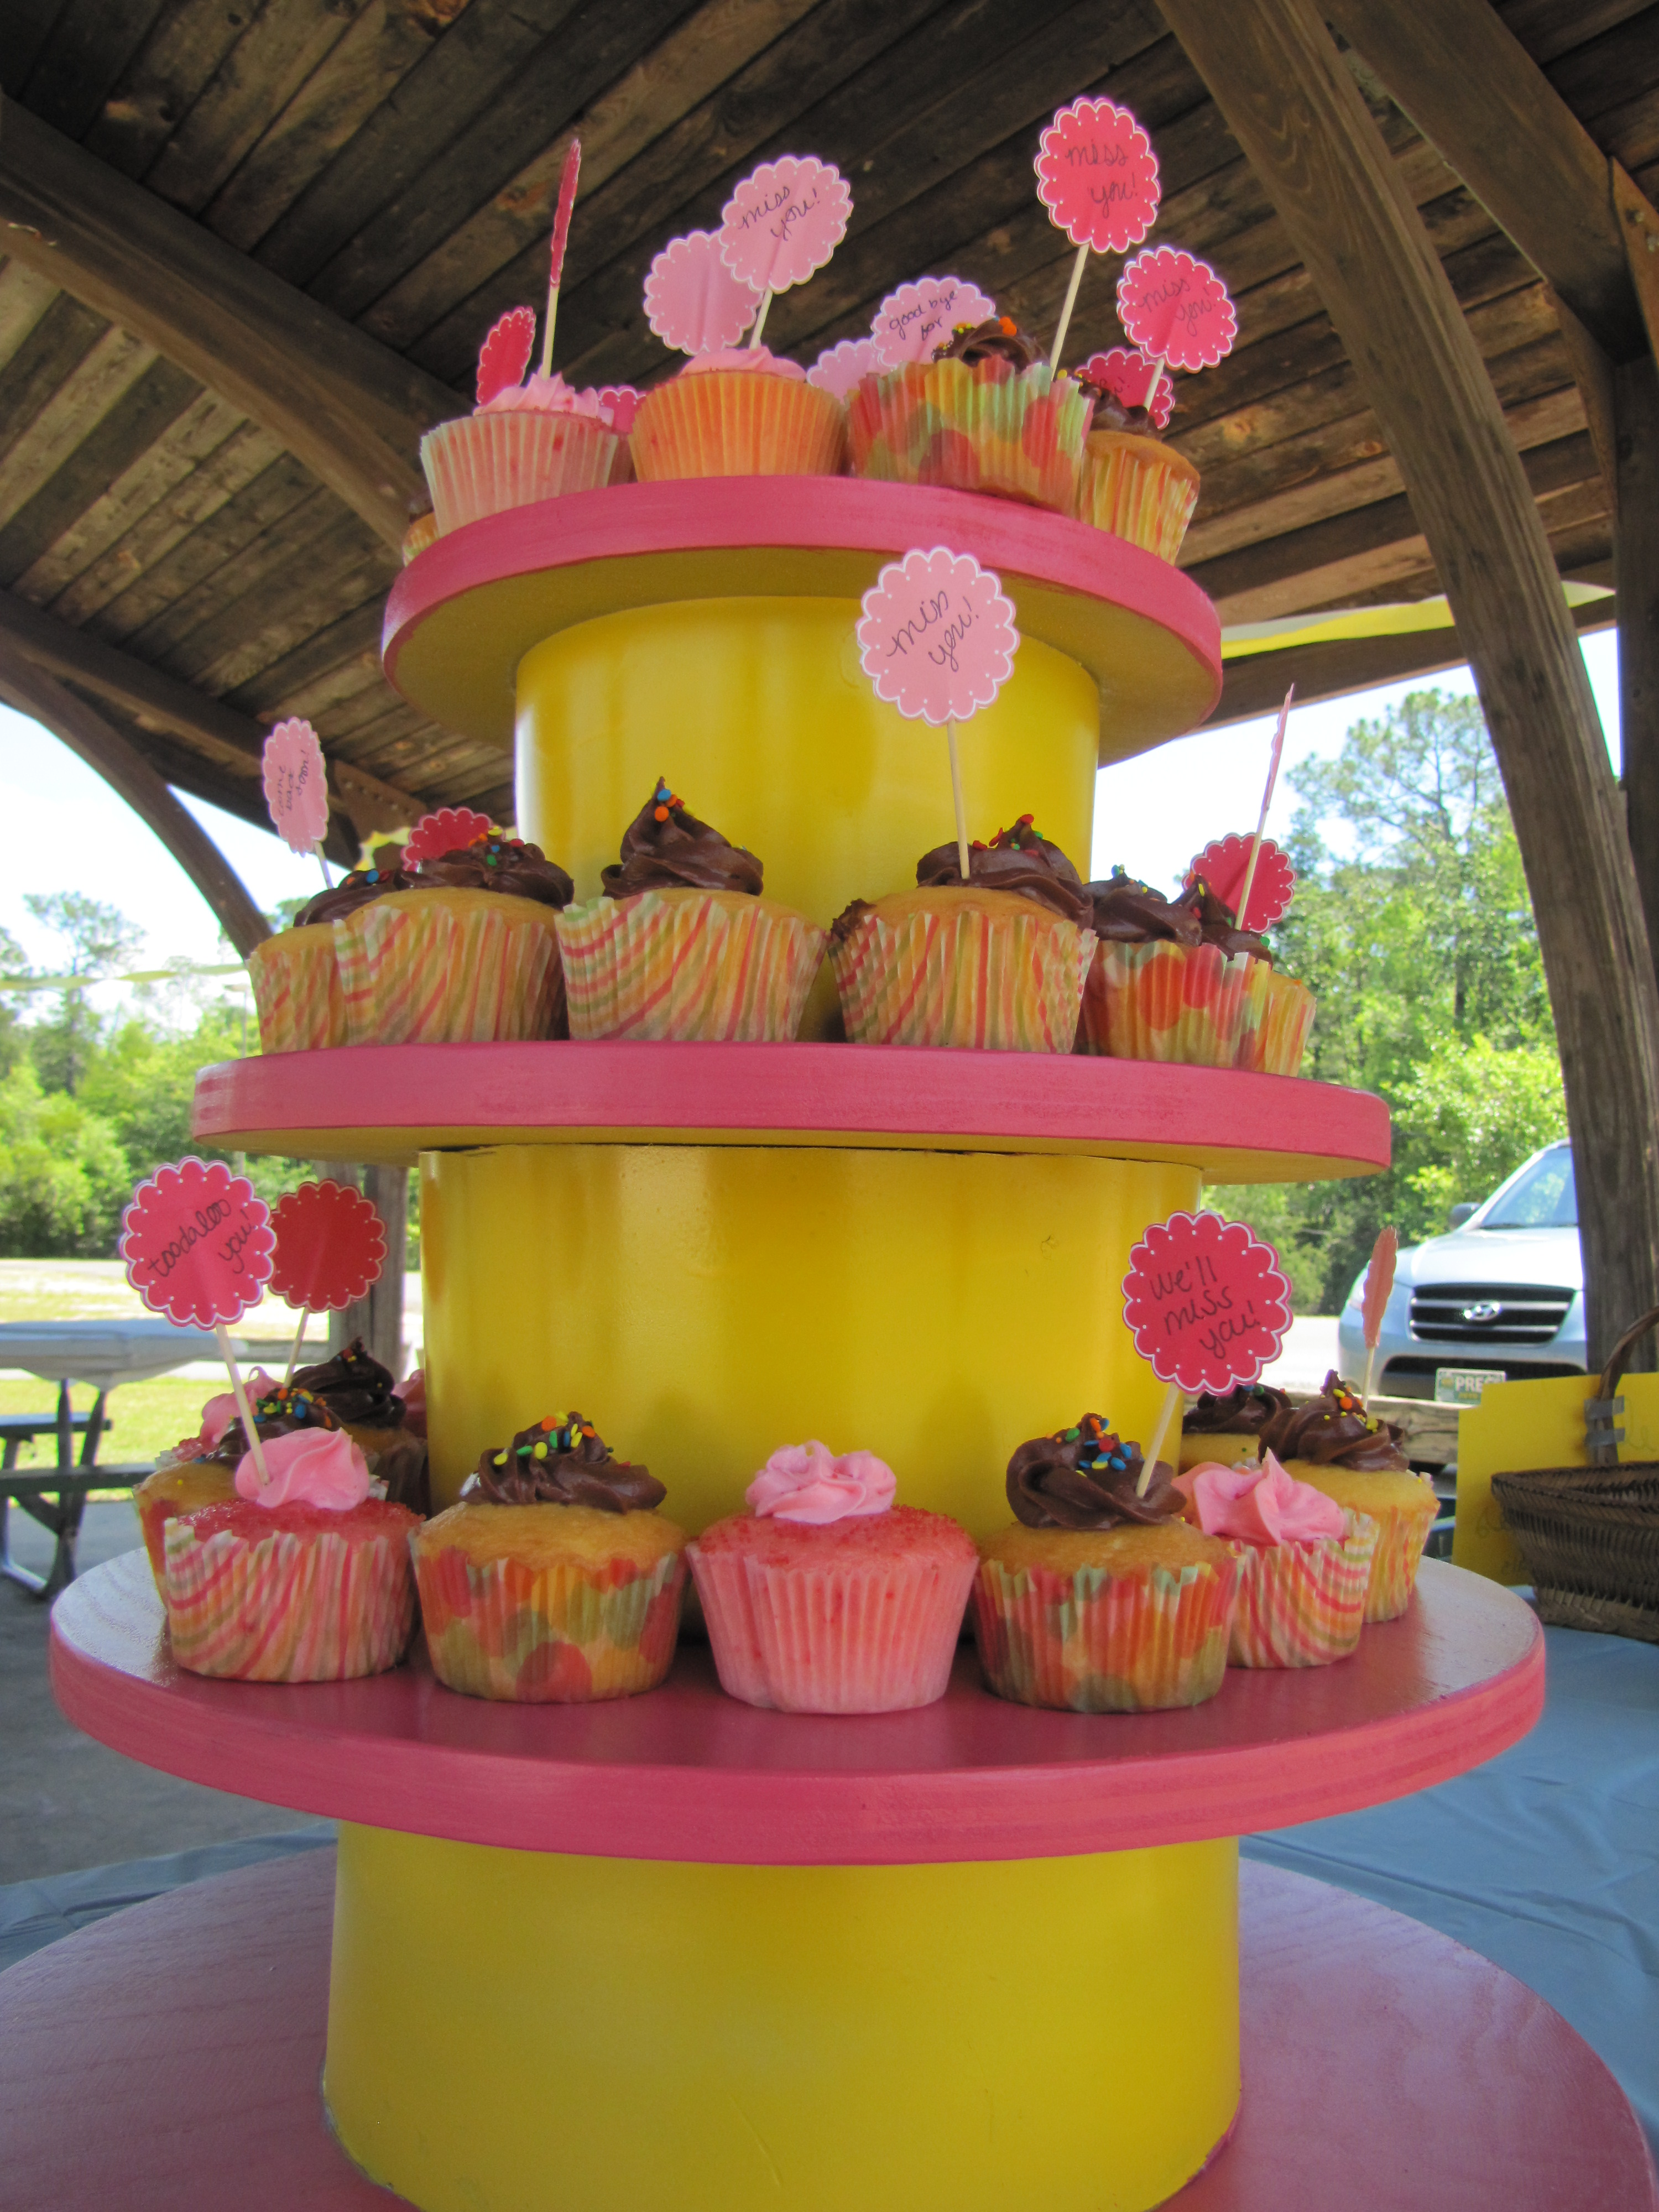 how to make a cupcake stand for 150 cupcakes